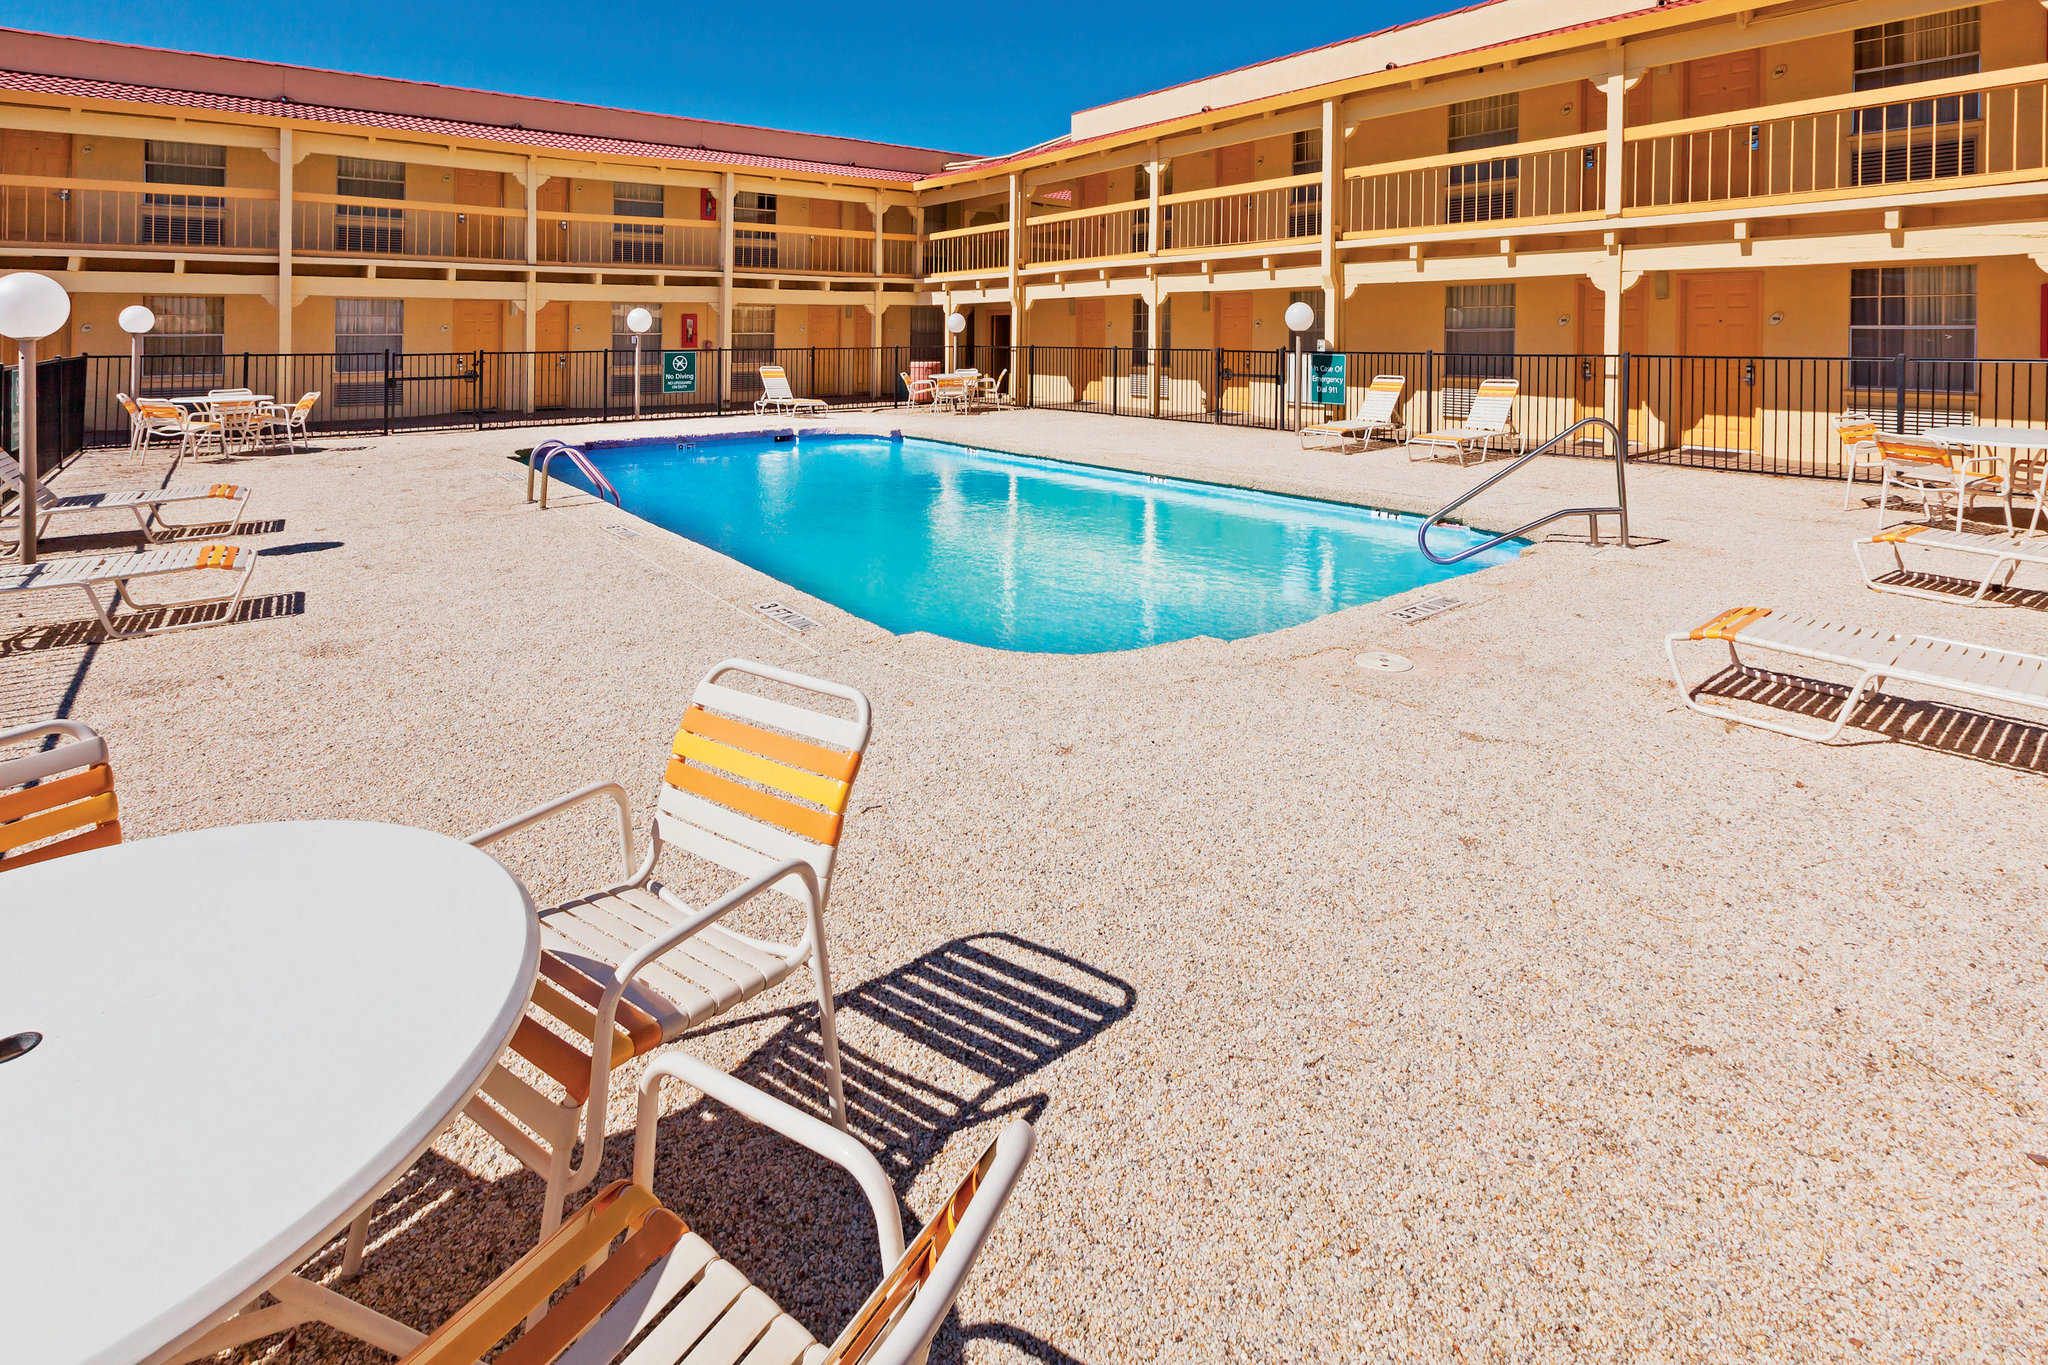 La Quinta Inn and Conference Center San Angelo